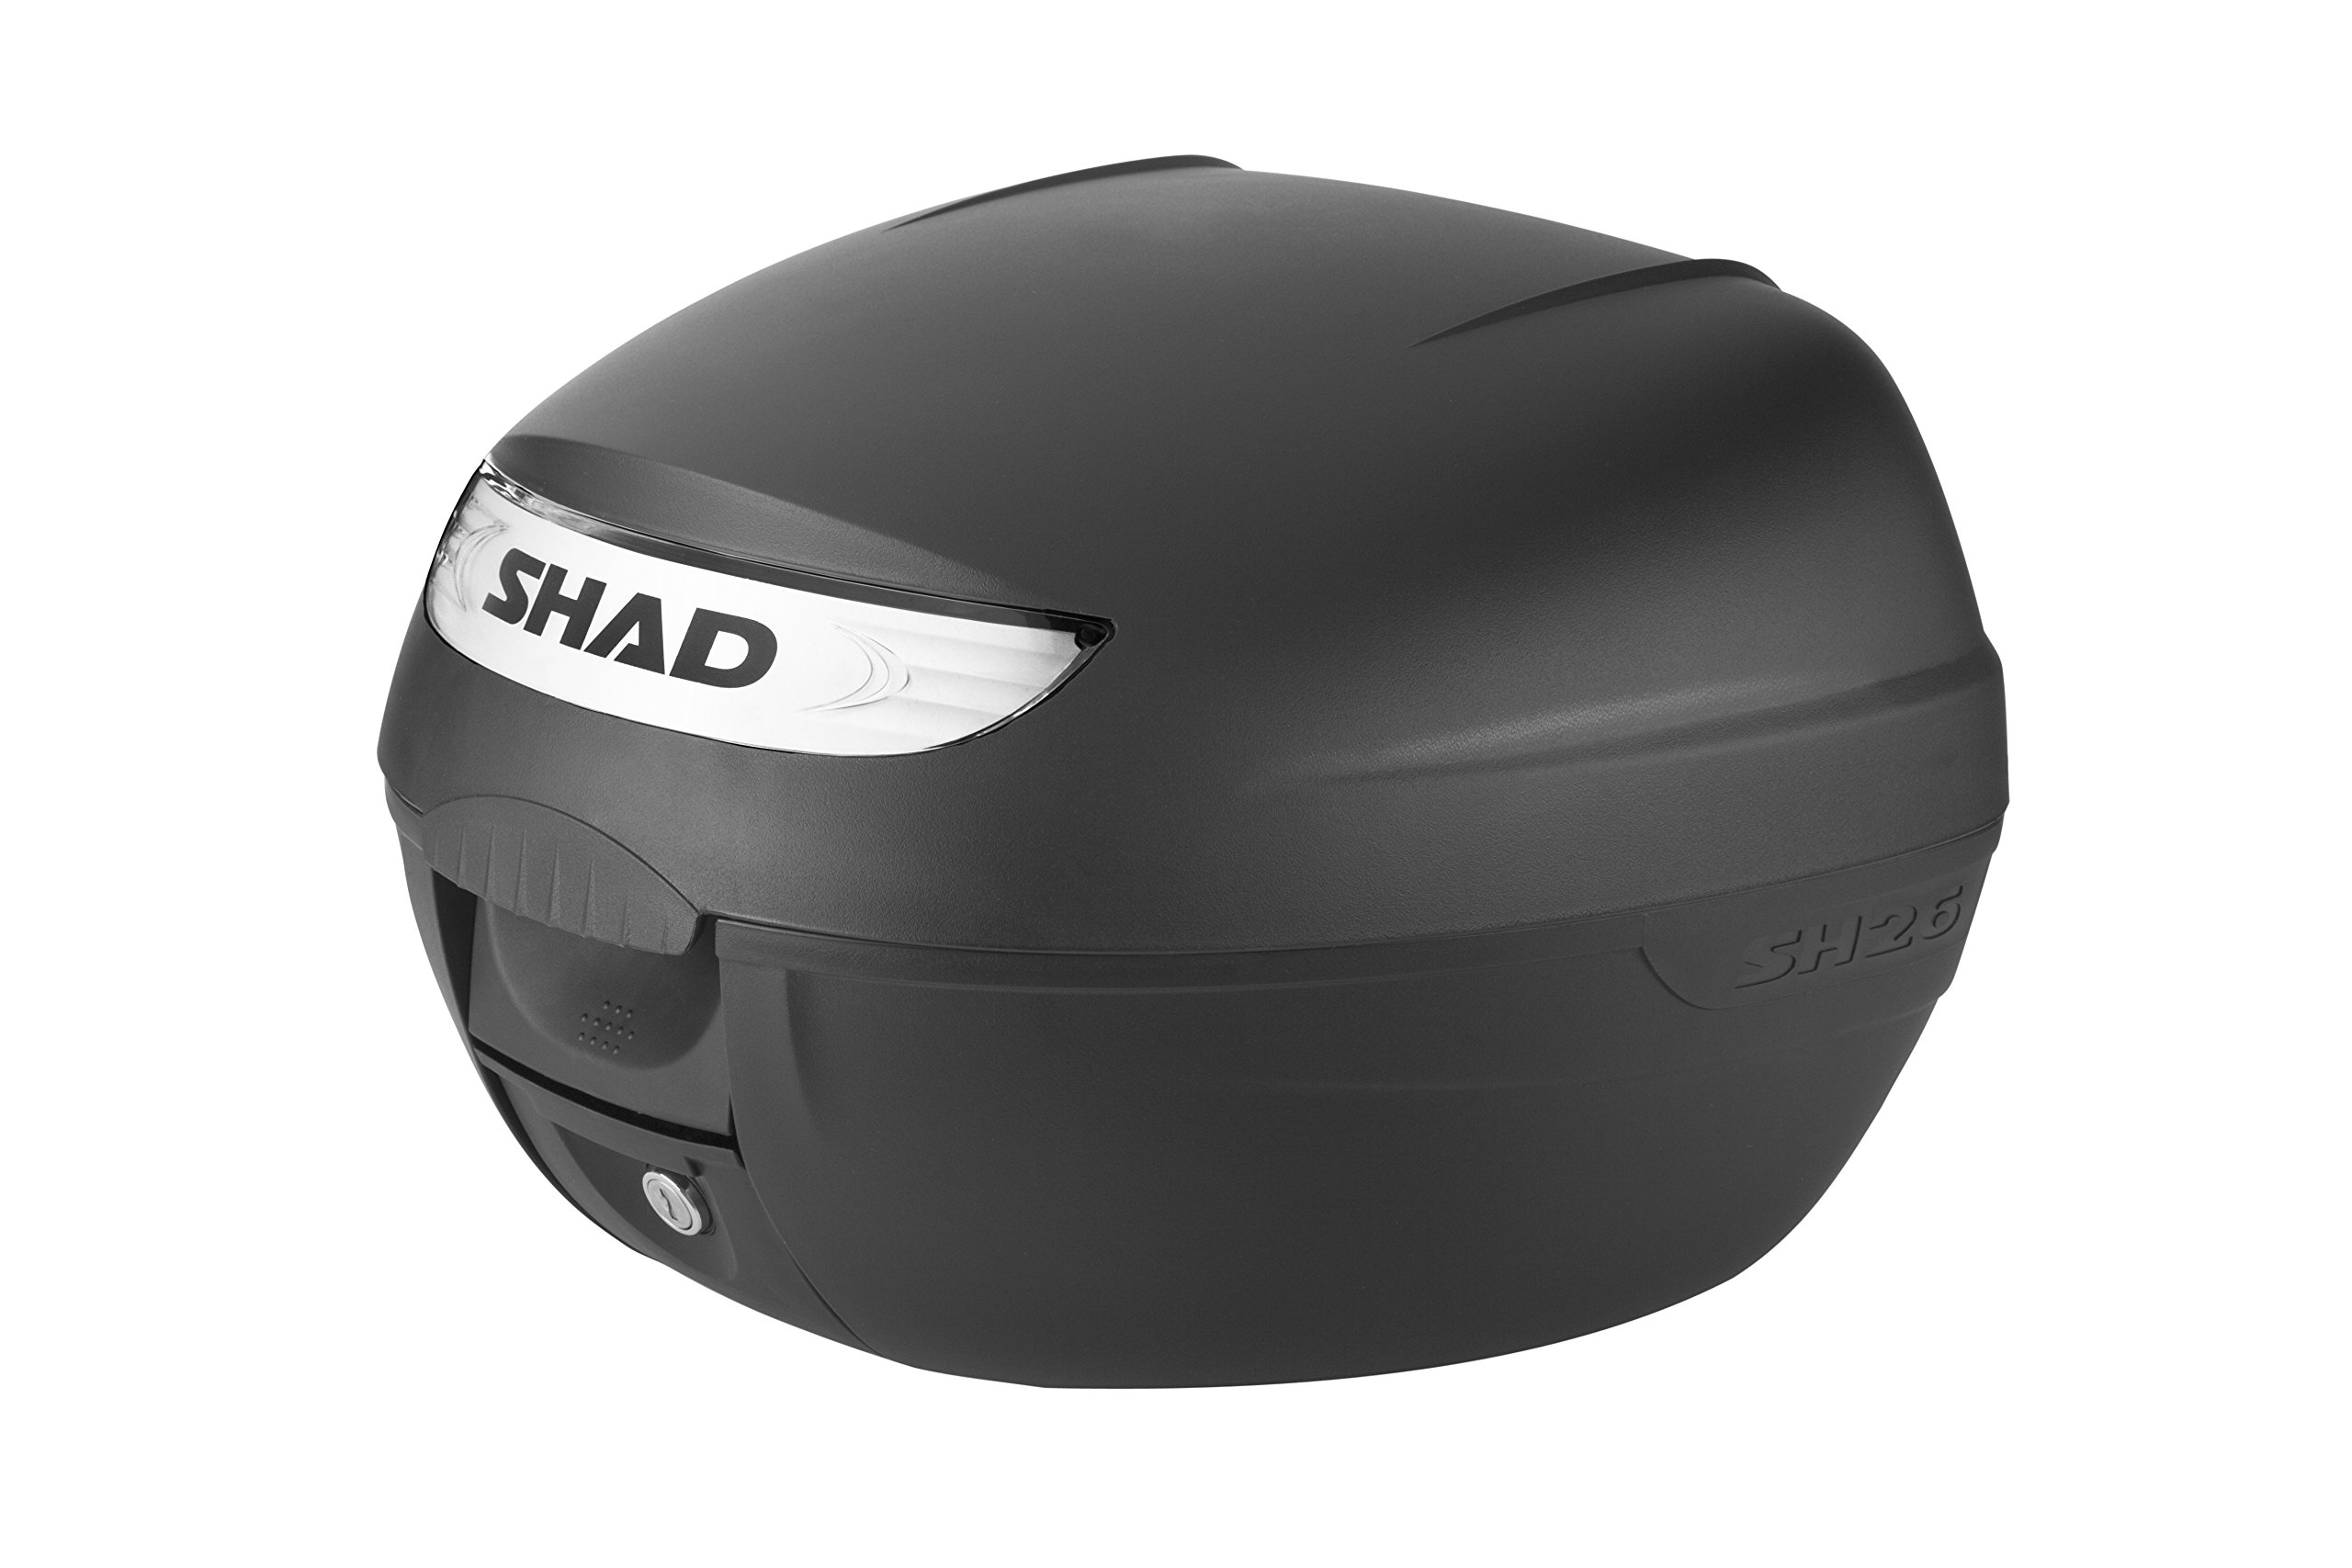 SHAD SH26 Top Case